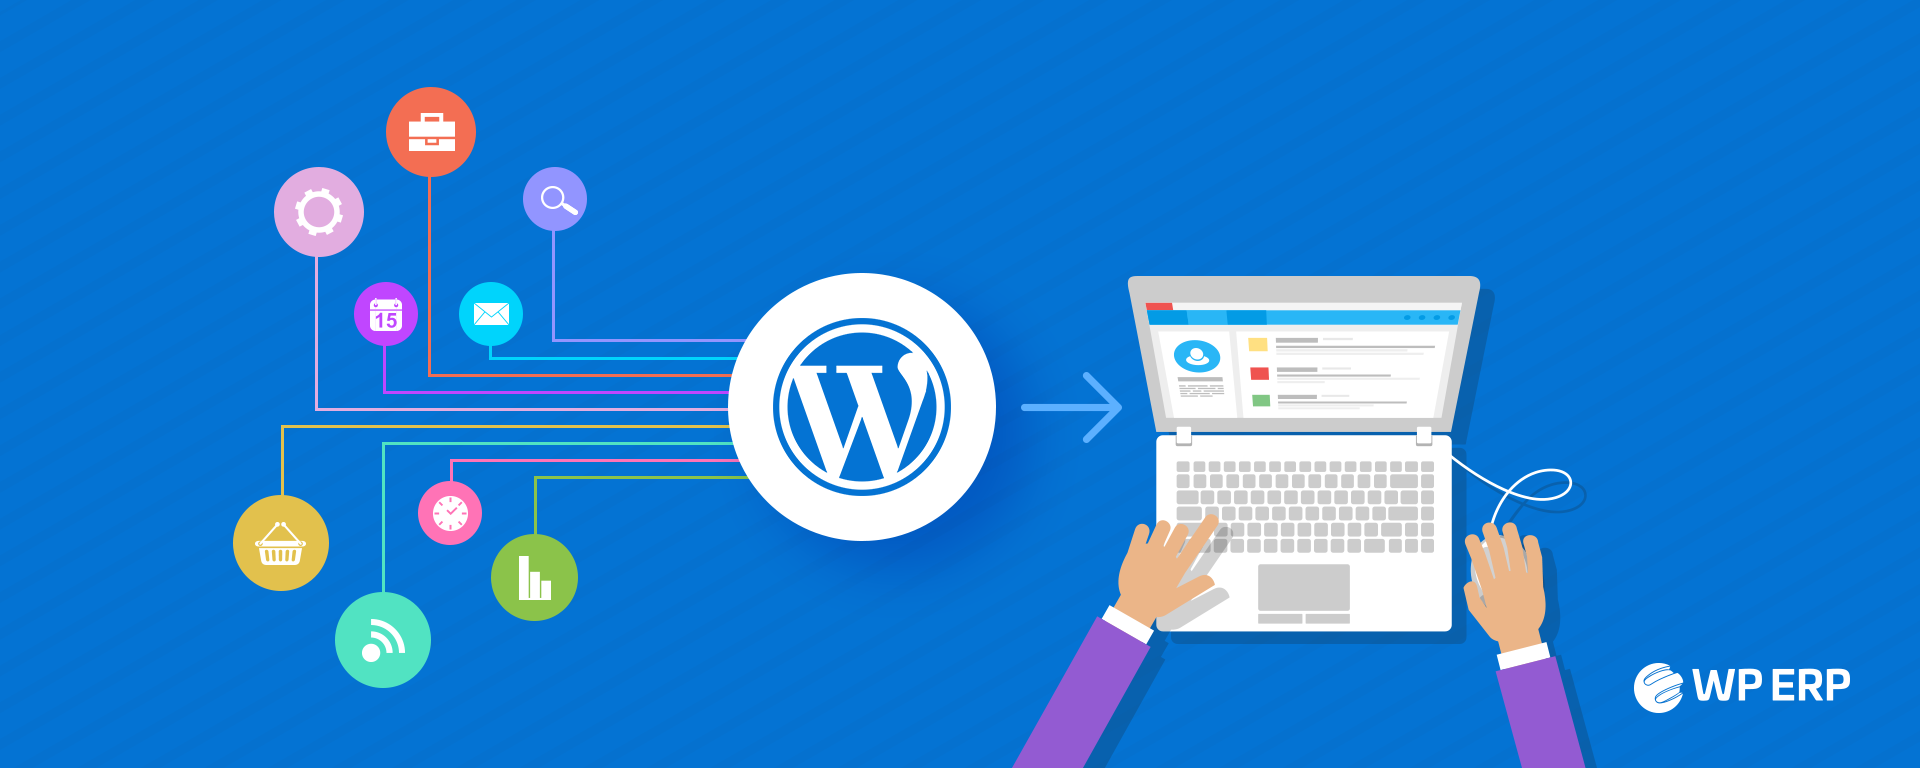 WordPress ERP Solution